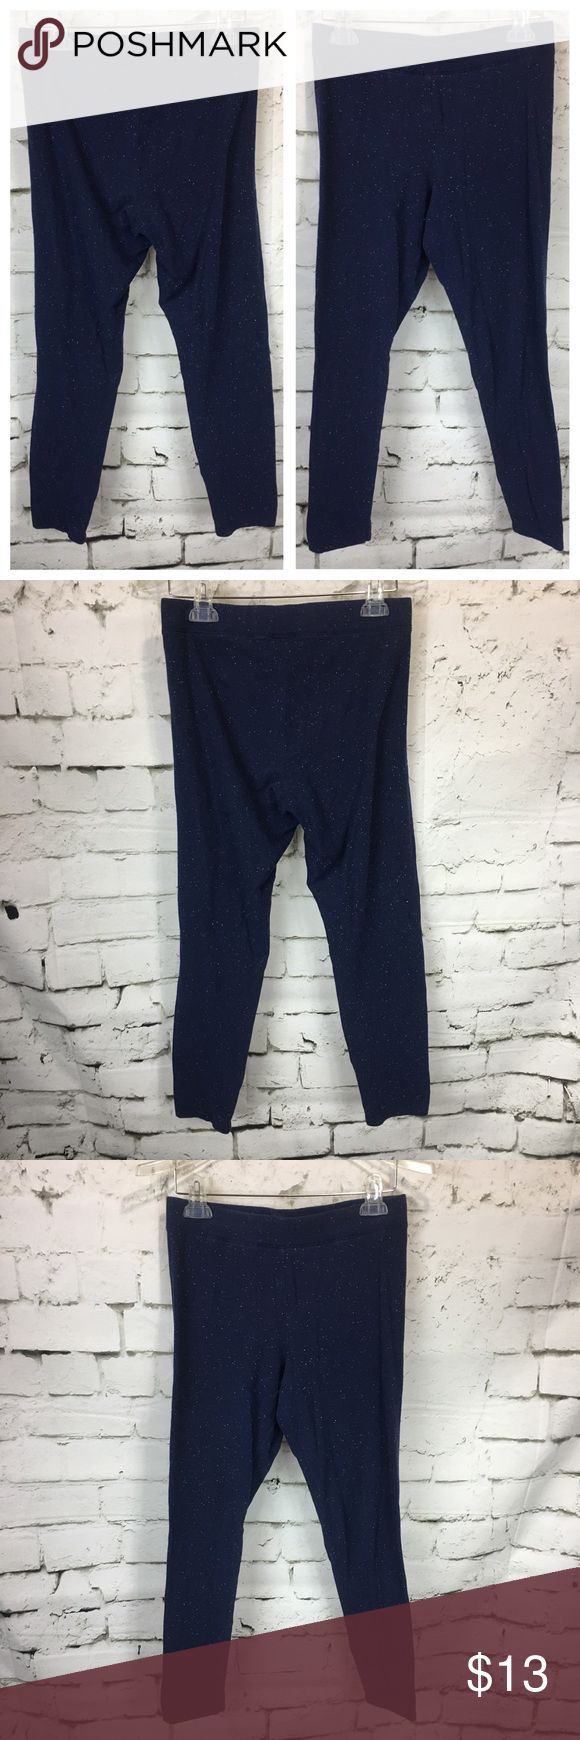 """Victorias Secret PINK Leggings Galaxy Blue Yoga Victorias Secret PINK Leggings Galaxy Blue Size L Athletic Yoga Pants Athleisure Dark Blue with speckled pattern fabric Nice Pre-Owned Condition, No Stains, No Holes  *Measurements are taken with garments laid flat and unstretched, please compare to your own garments for best fit*  Waist: 14.5"""" across Rise: 11"""" Inseam: 27""""  P-O PINK Victoria's Secret Pants Leggings"""